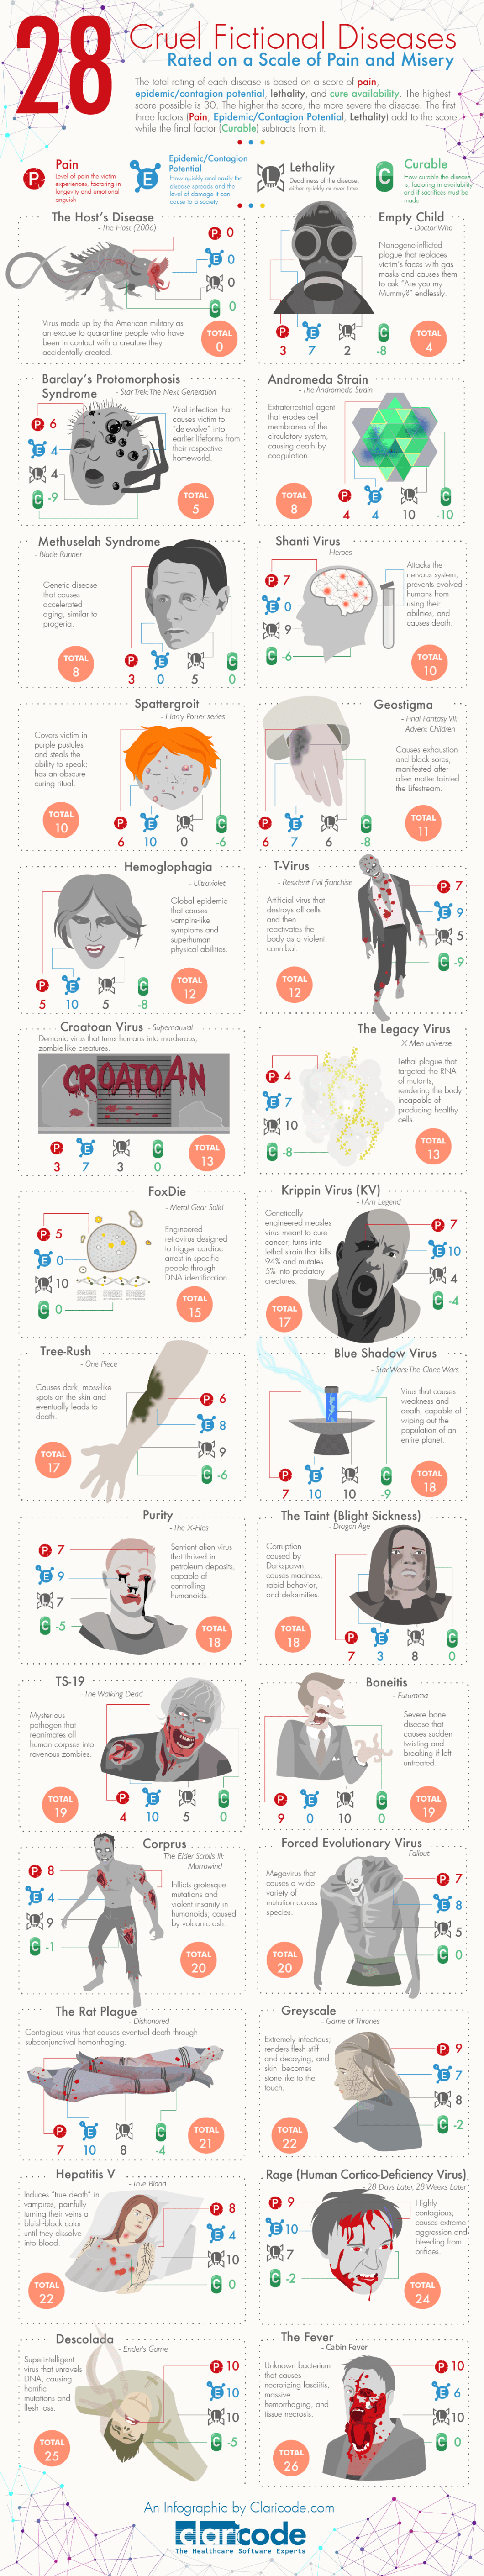 28 Deadly Fictional Diseases From TV, Books, Games, And Films - Infographic